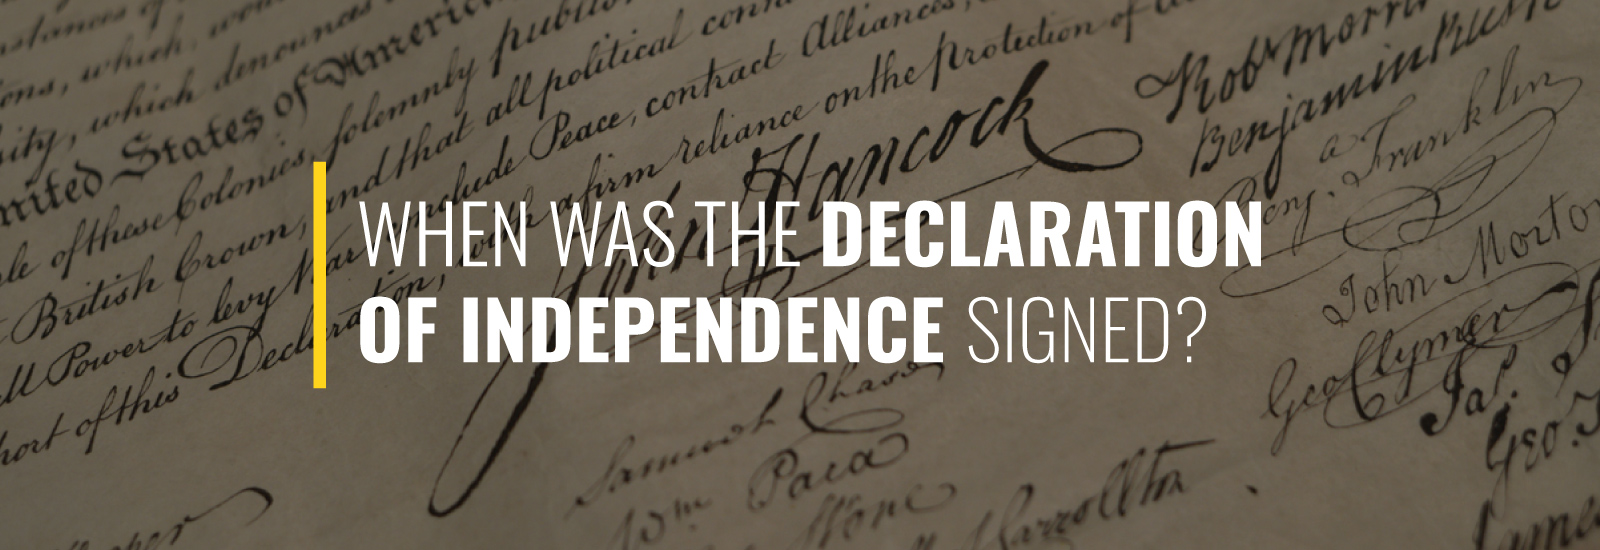 What Date Was the Declaration of Independence Signed?